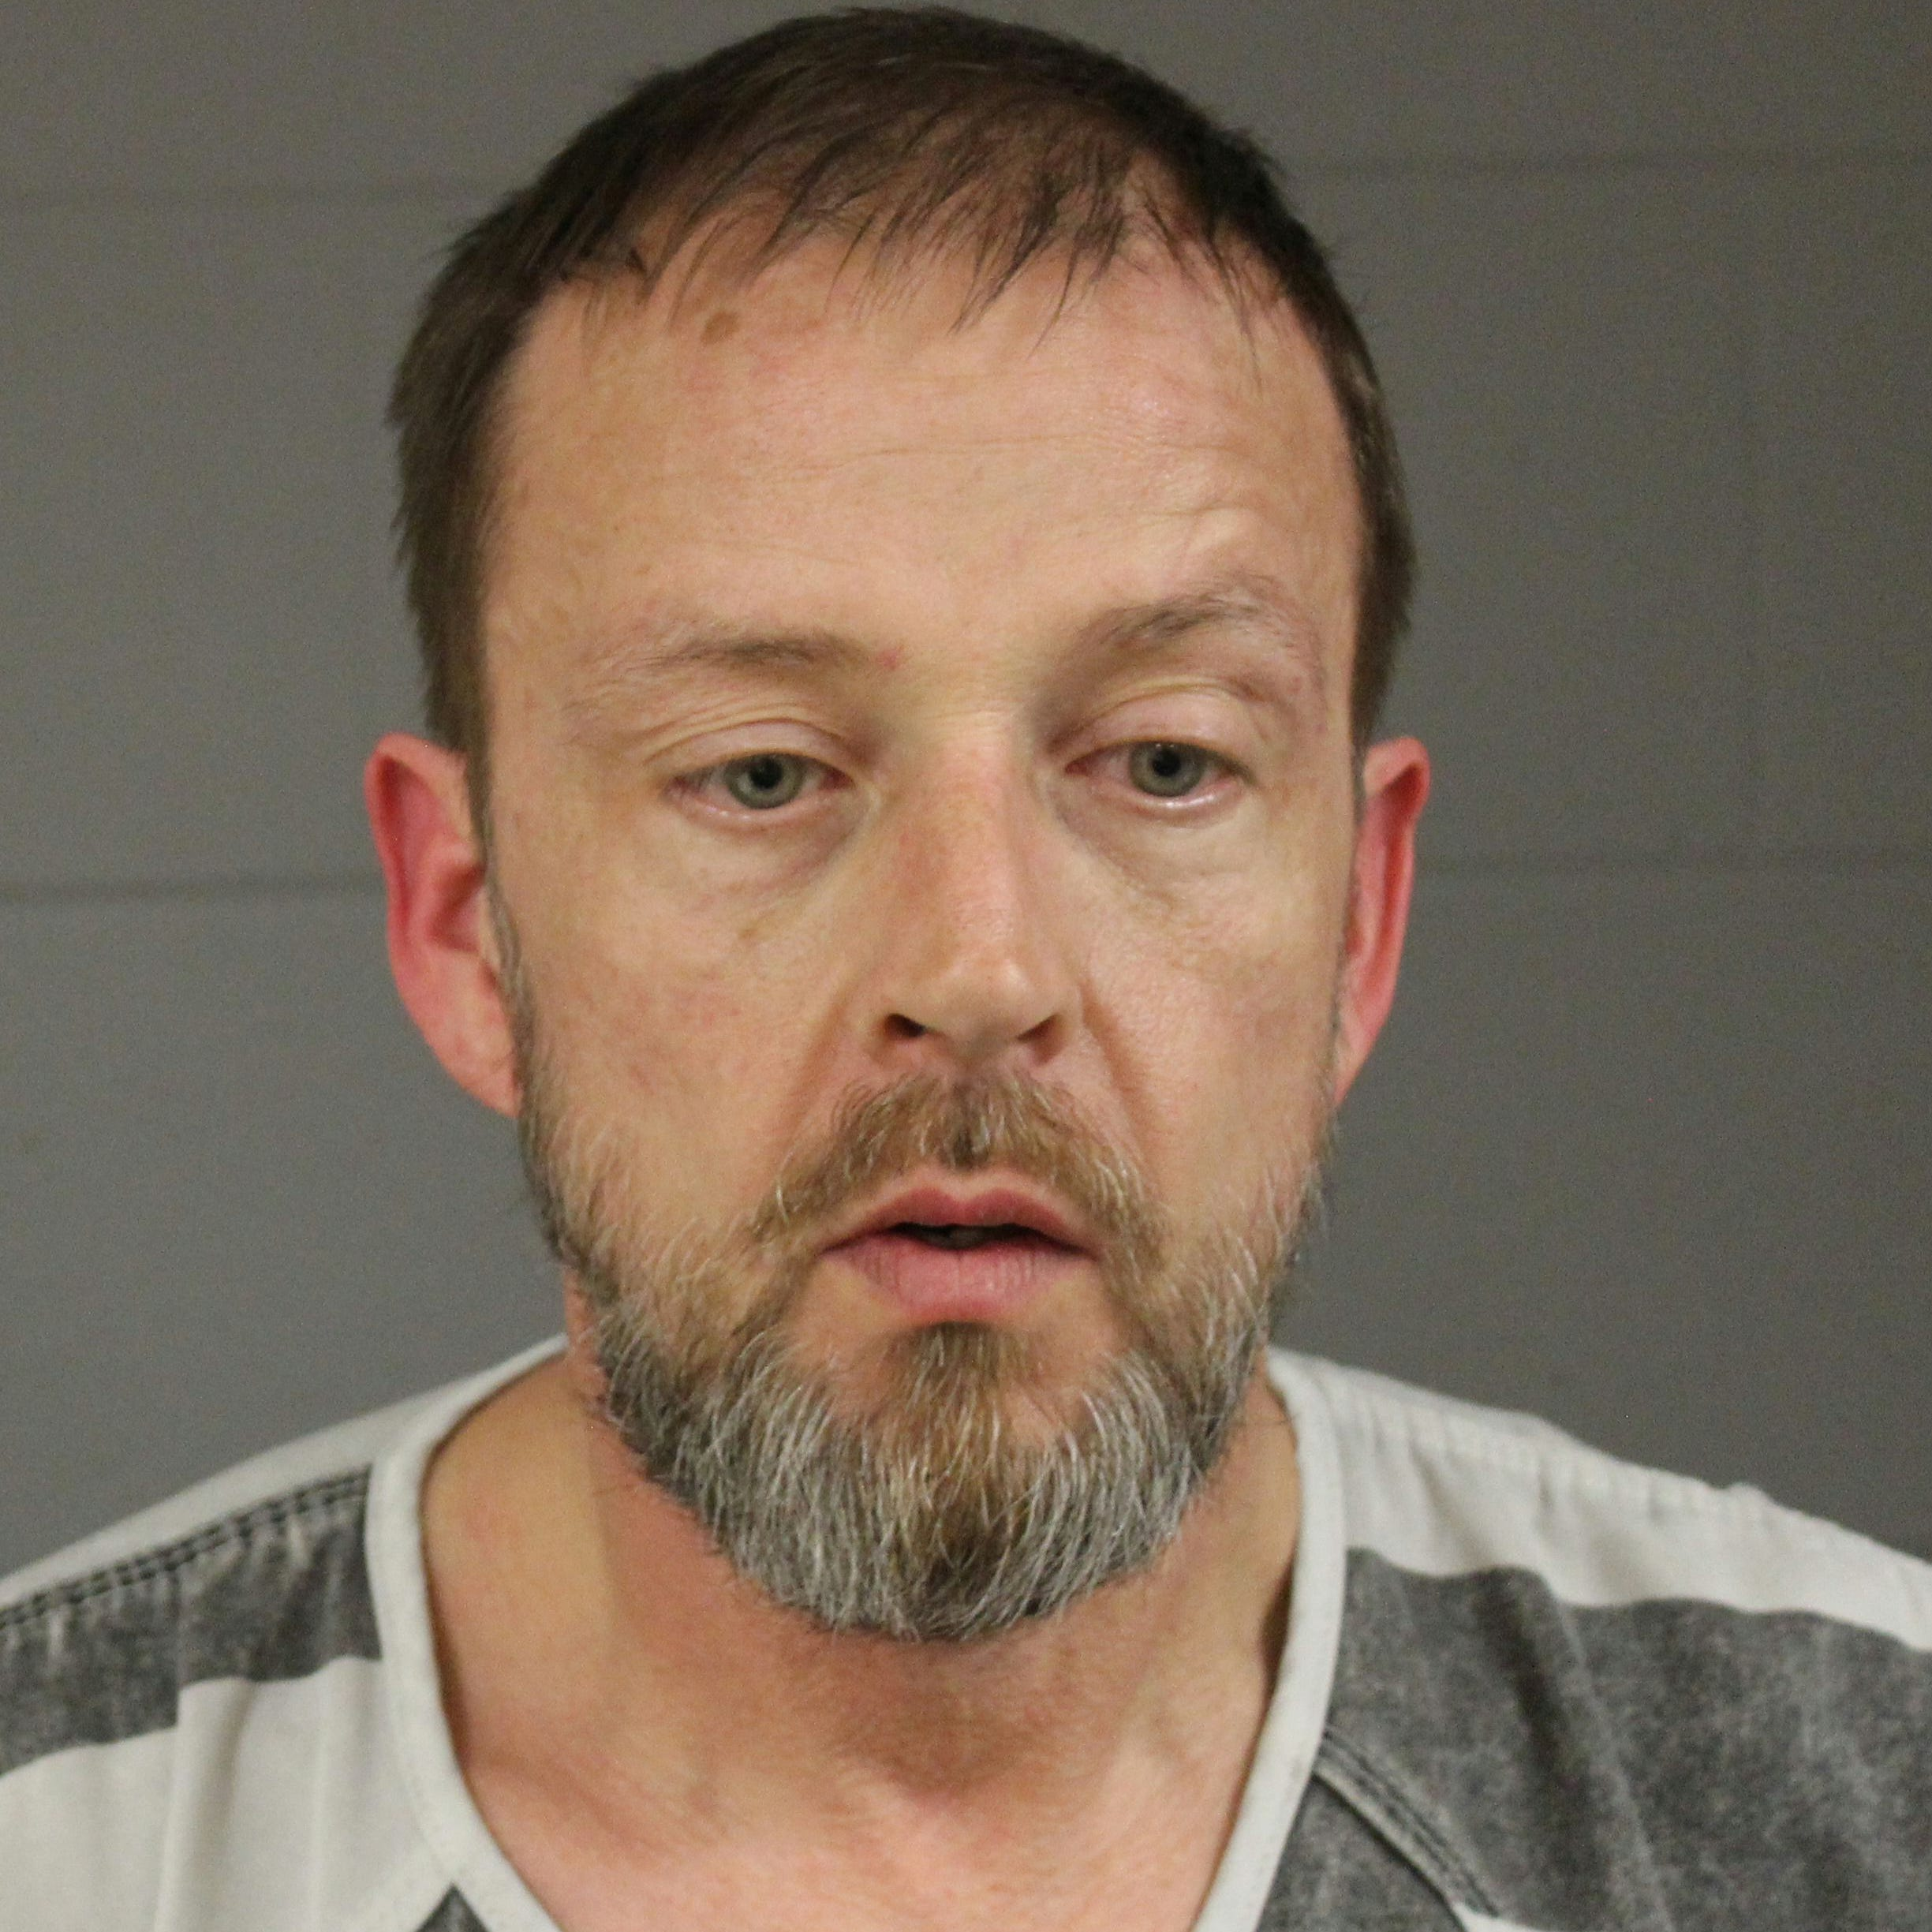 Dell Rapids man charged with molesting young girls at sleepovers